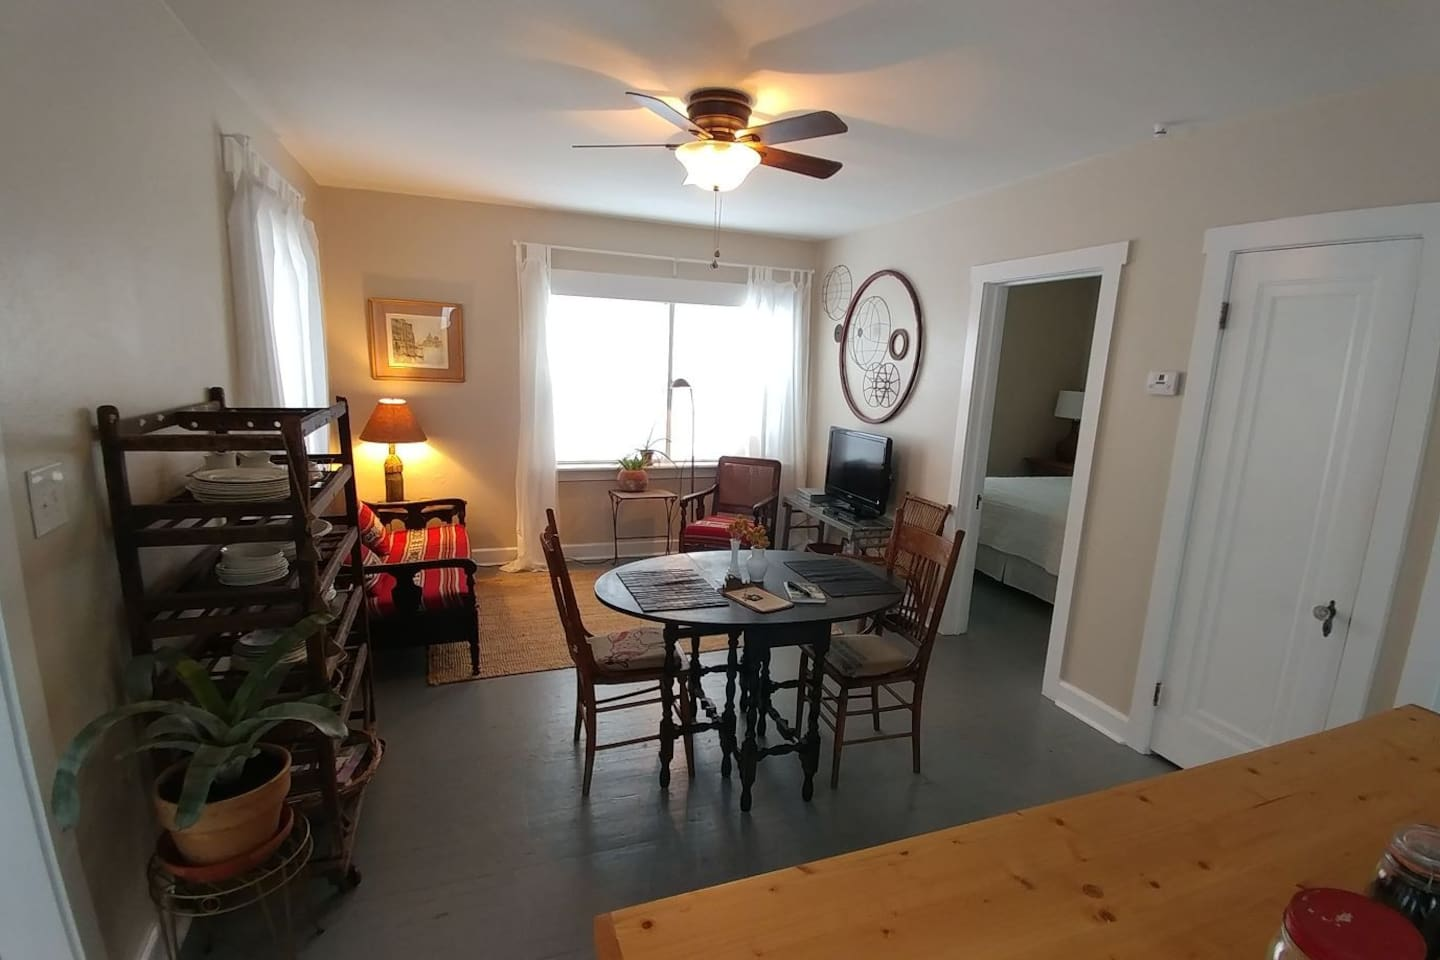 Living and dining area provides a fun space to kick back, relax, or enjoy a meal